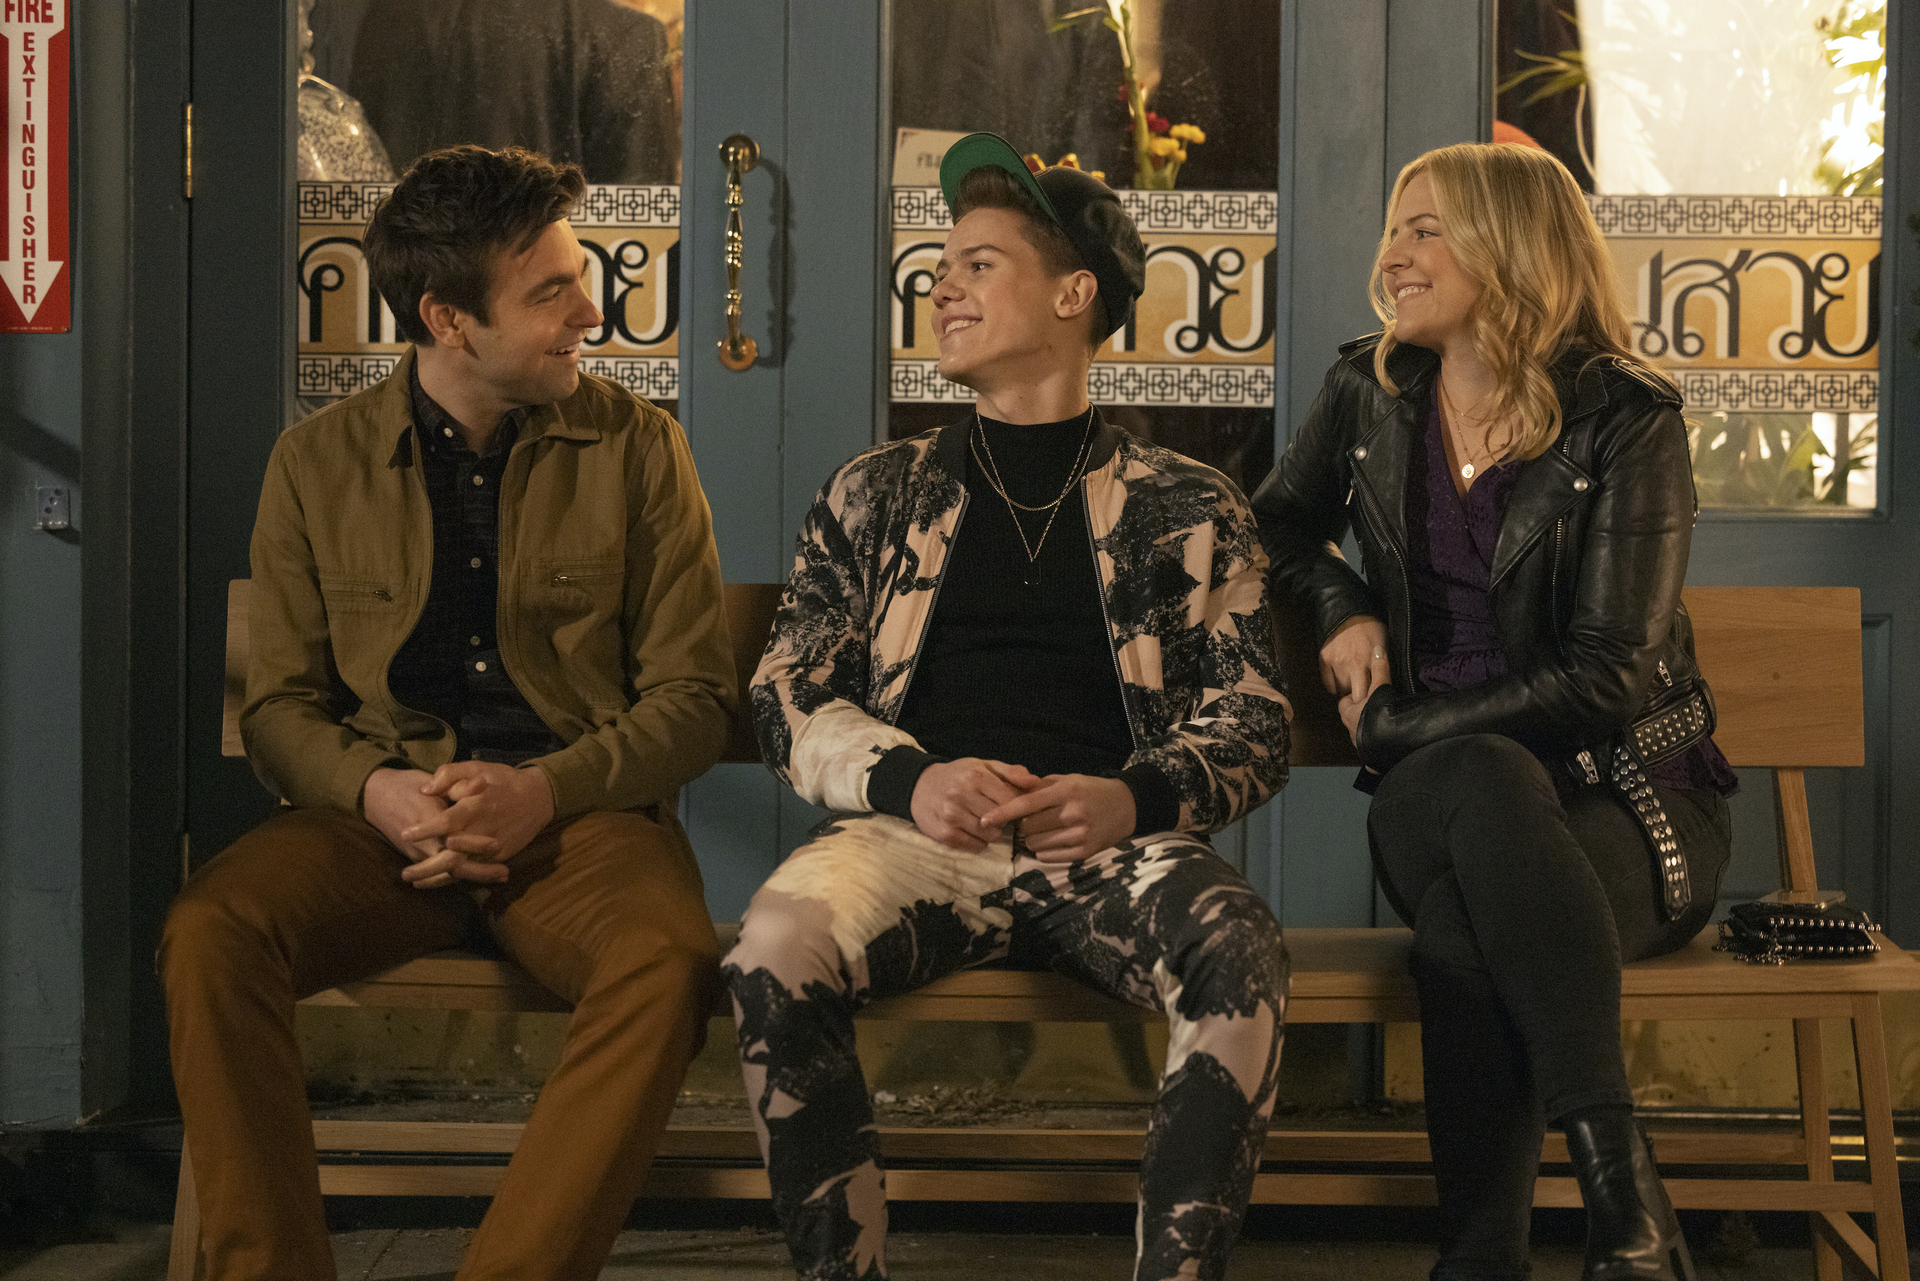 Teen pop star Chase Dreams sits between his siblings Cary and Brooke in the HBO Max comedy The Other Two.